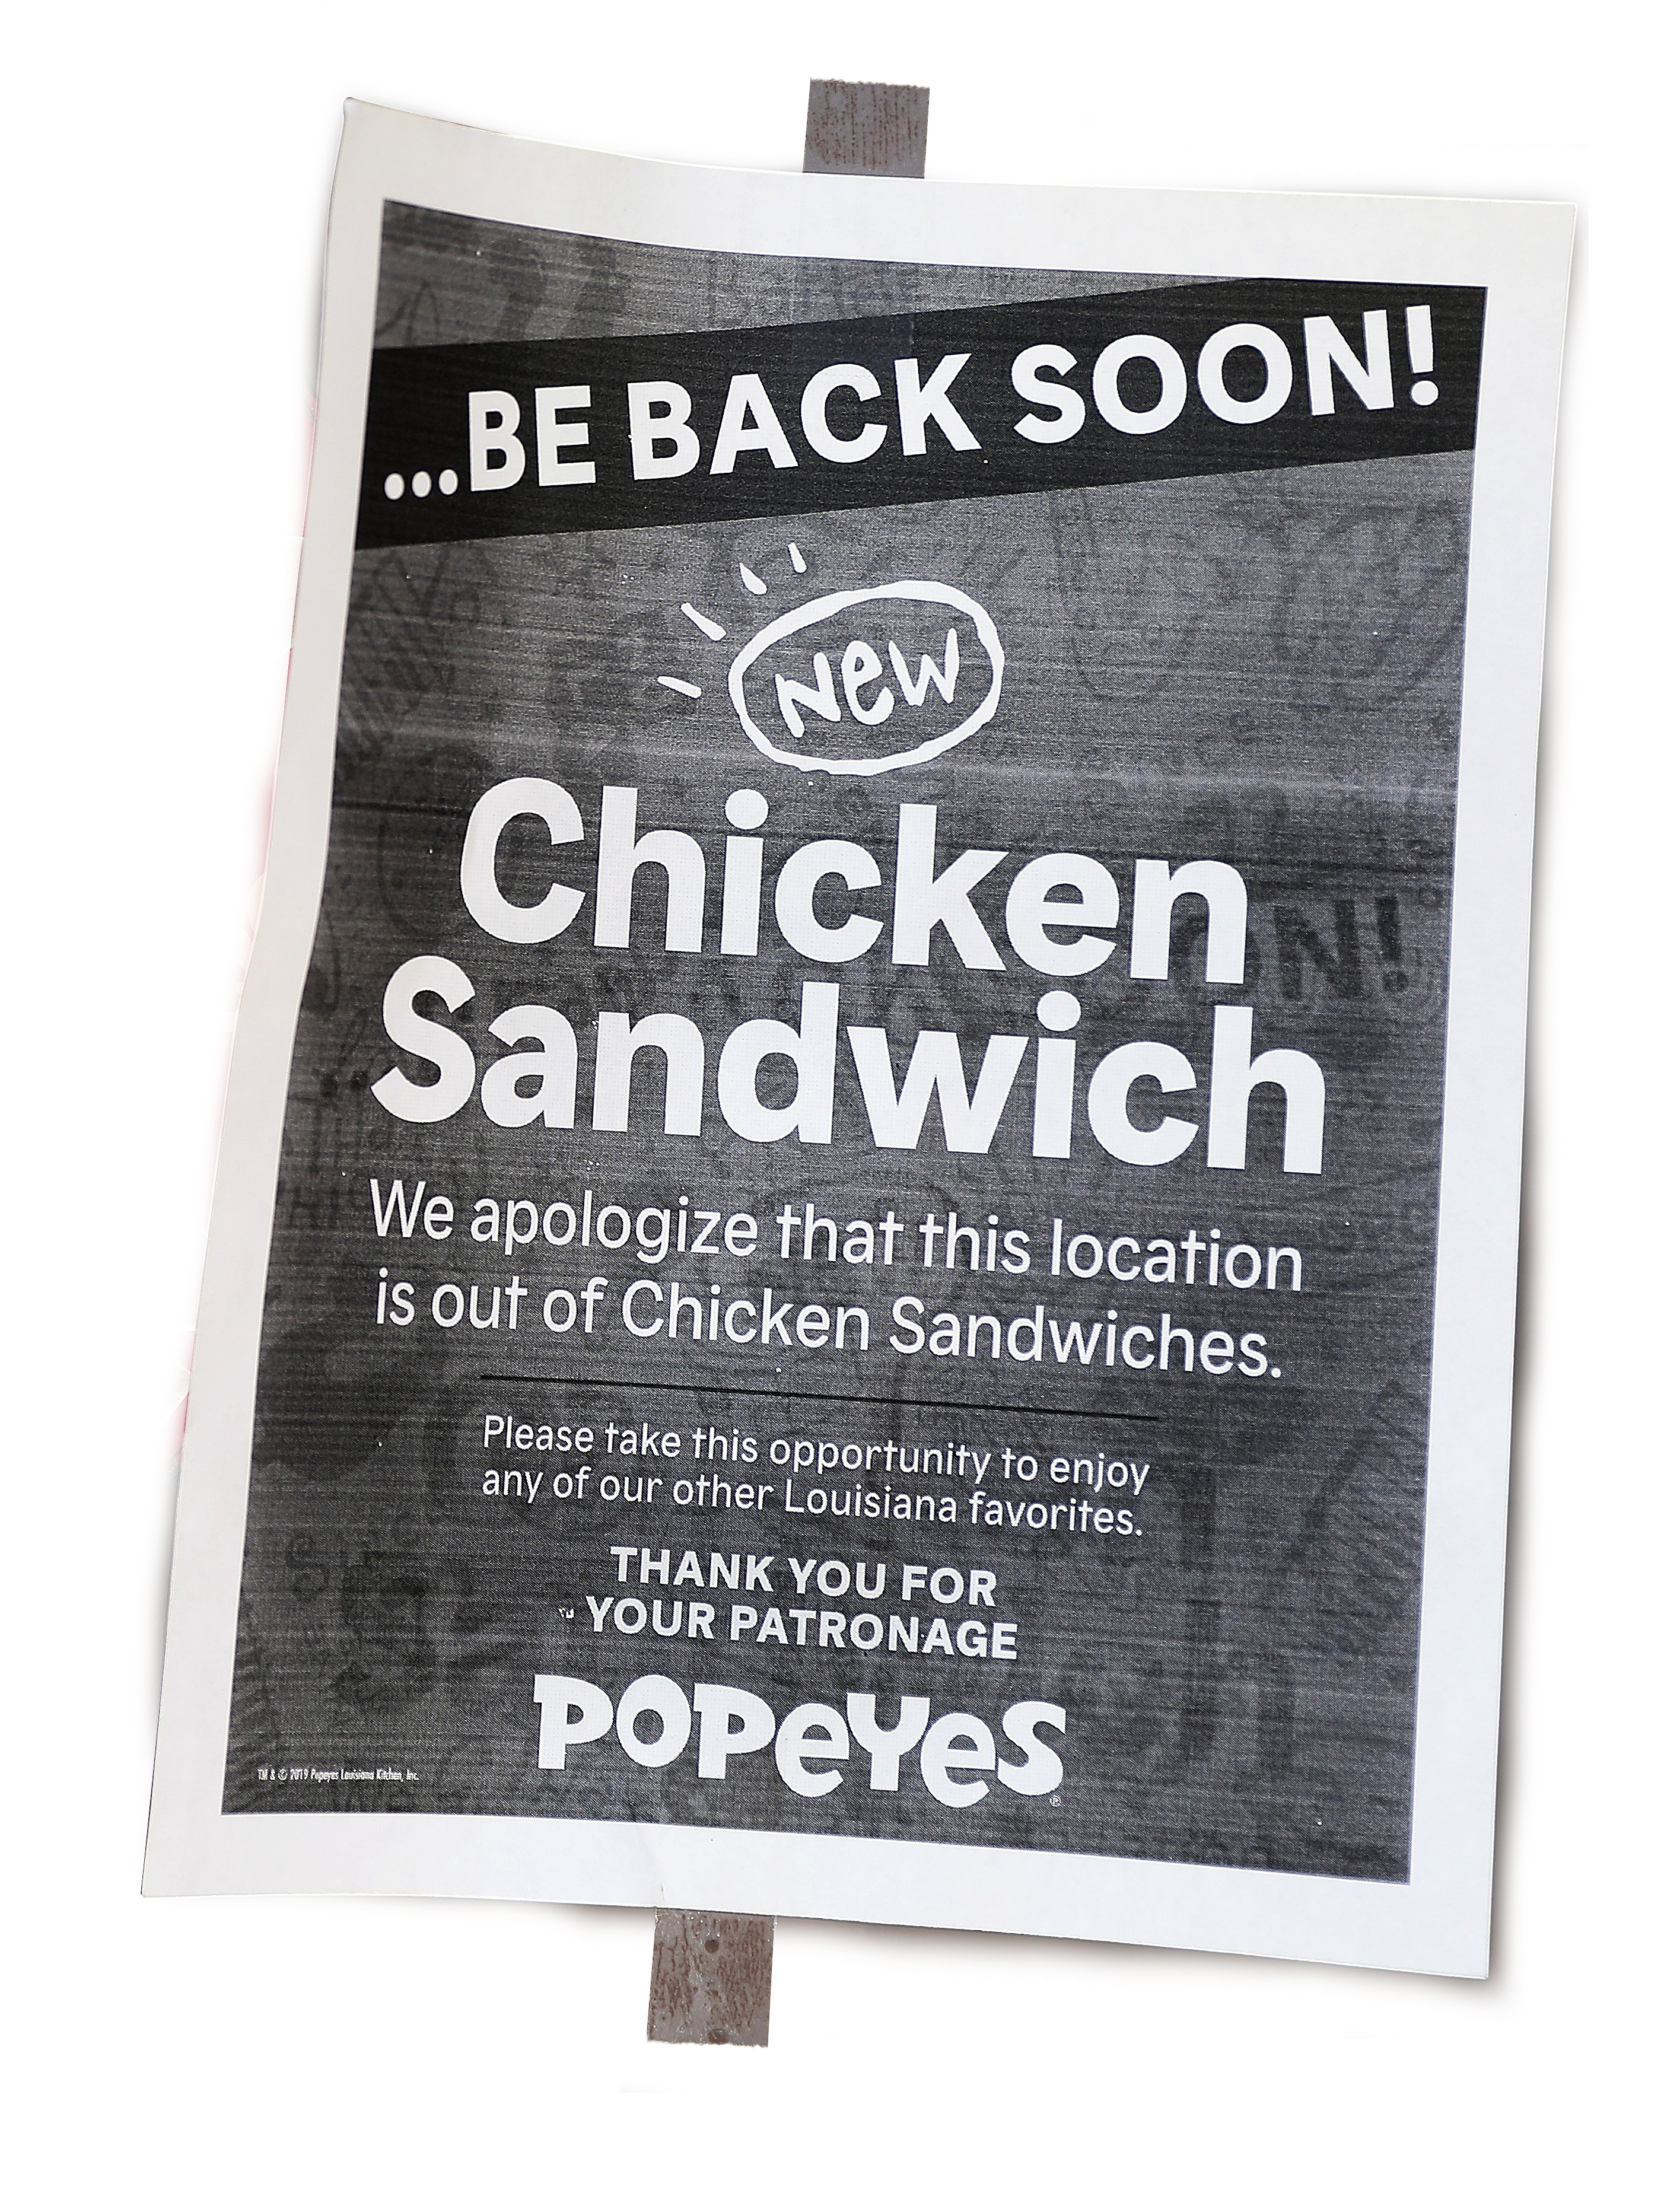 The Internet flipped out over Popeyes' chicken sandwich